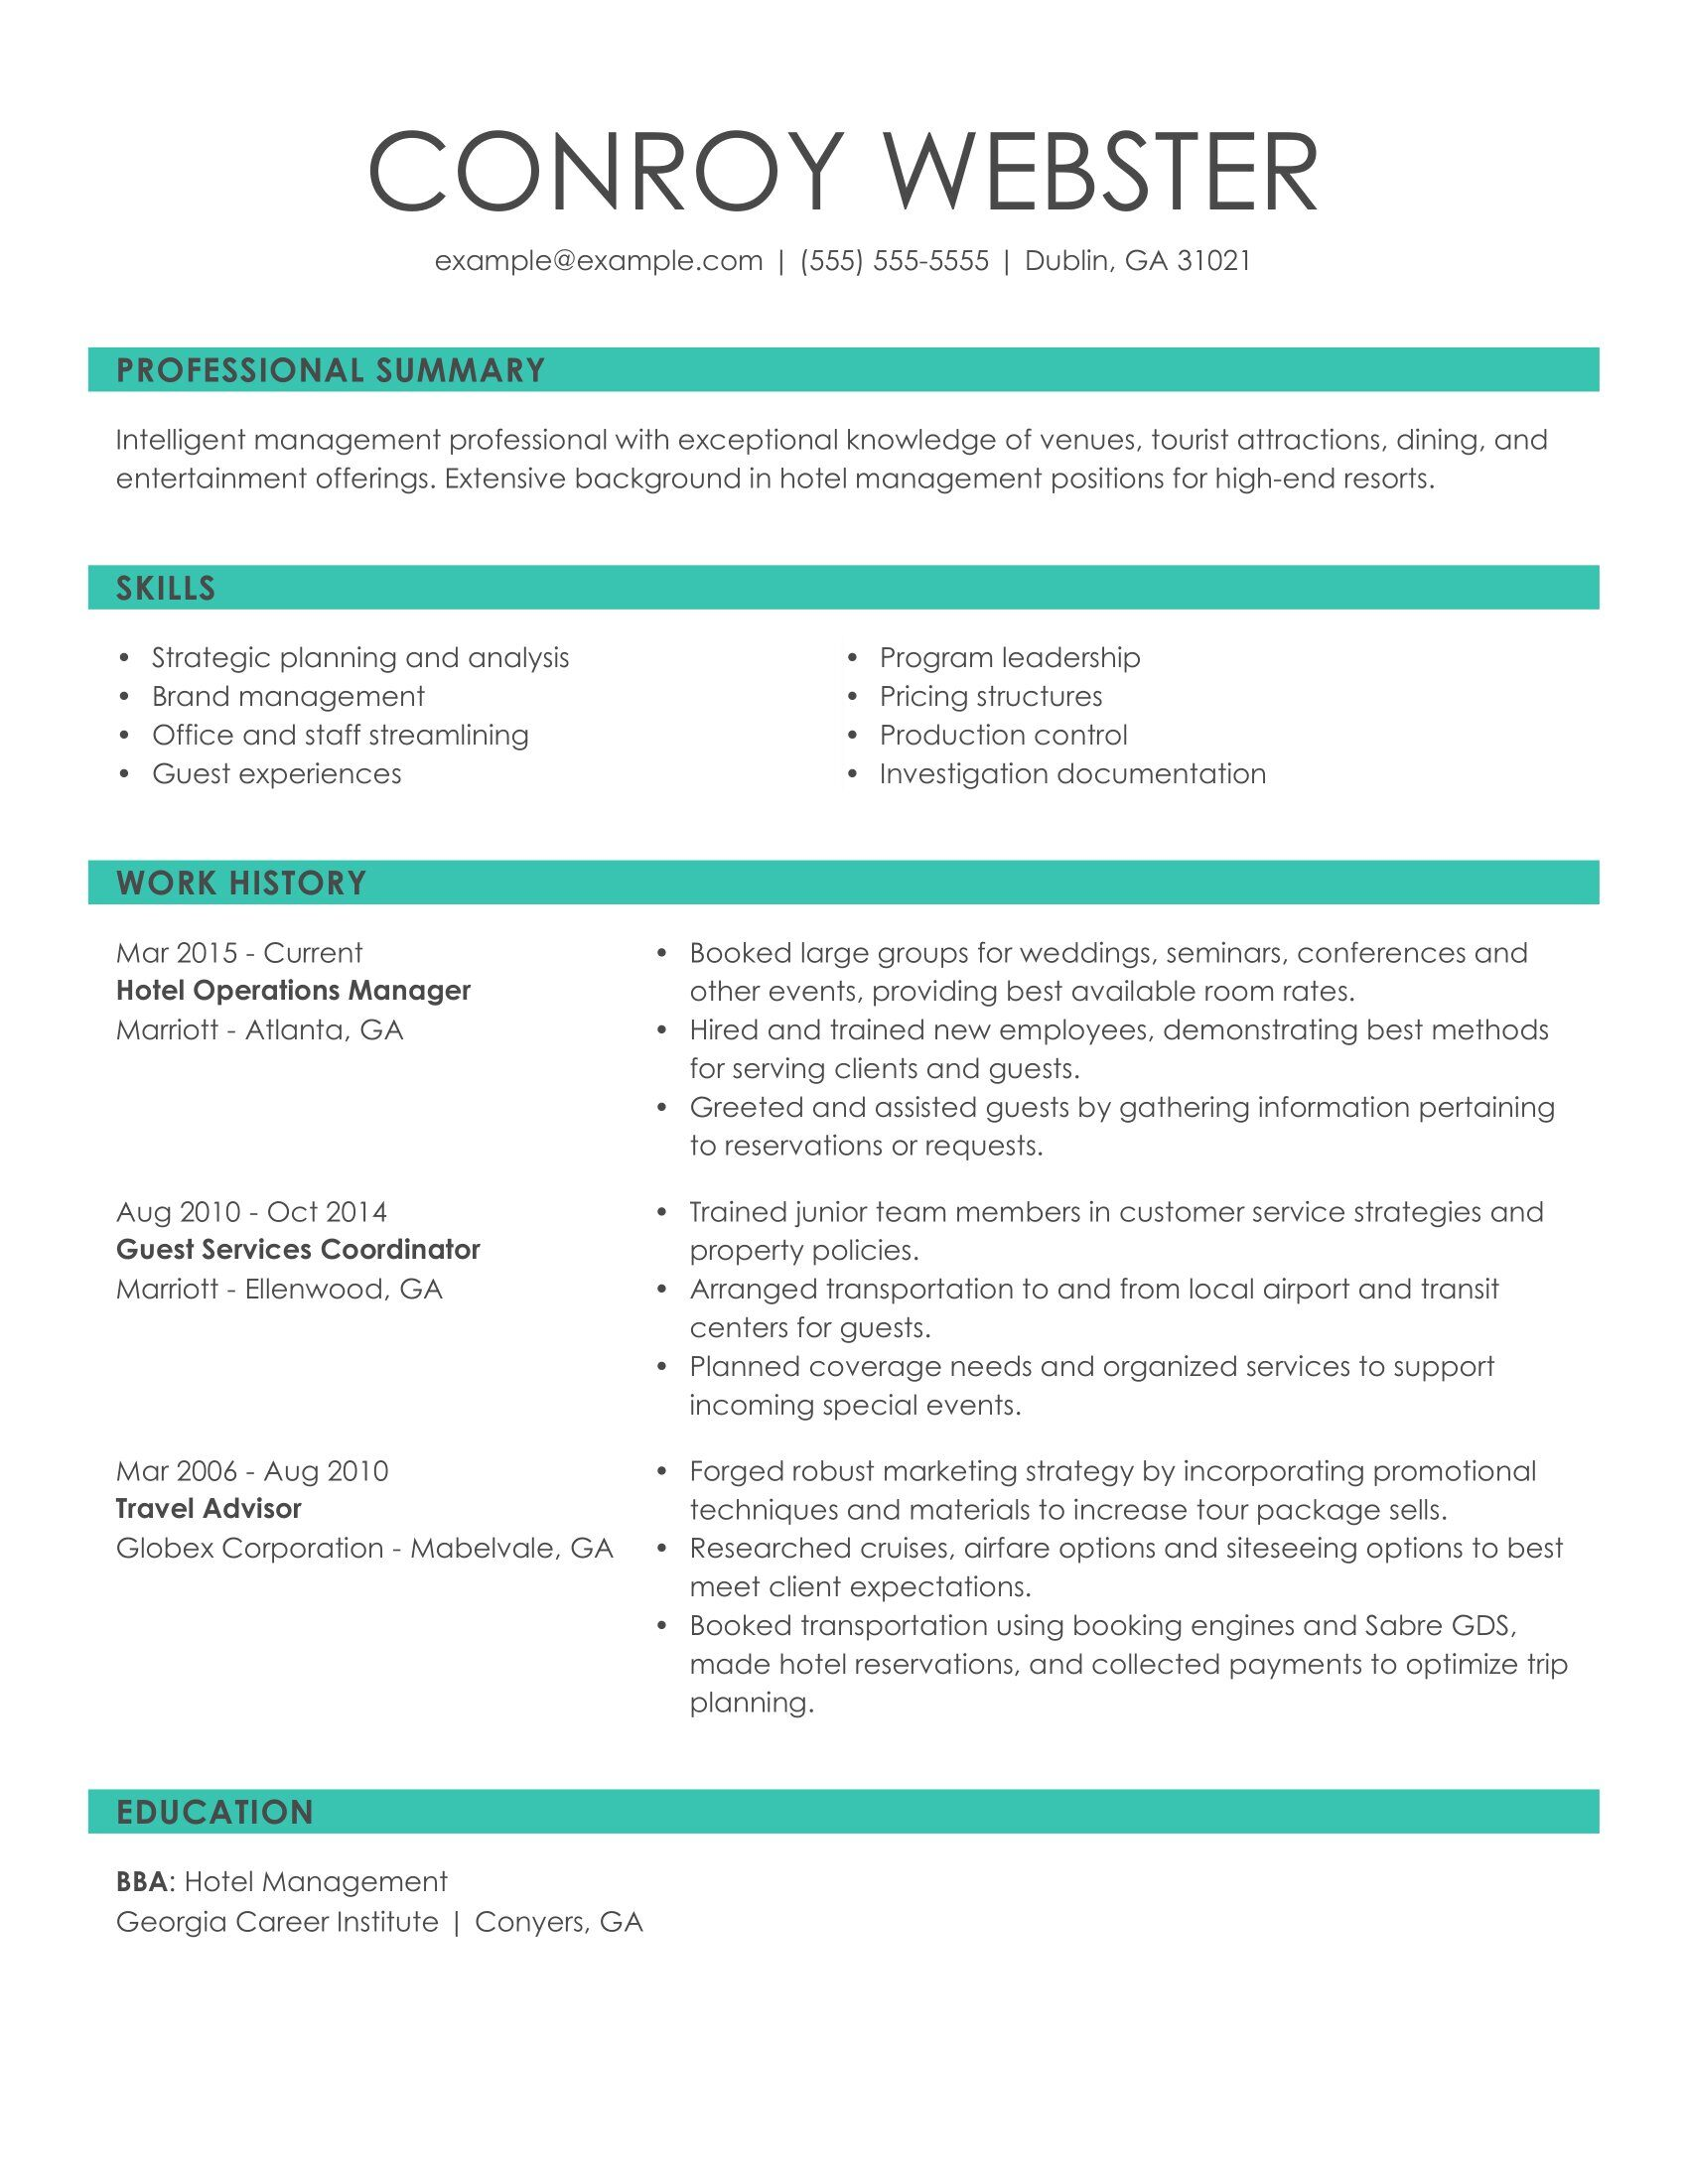 see our top customer service resume example job summary for hotel ops manager paralegal Resume Job Summary For Resume